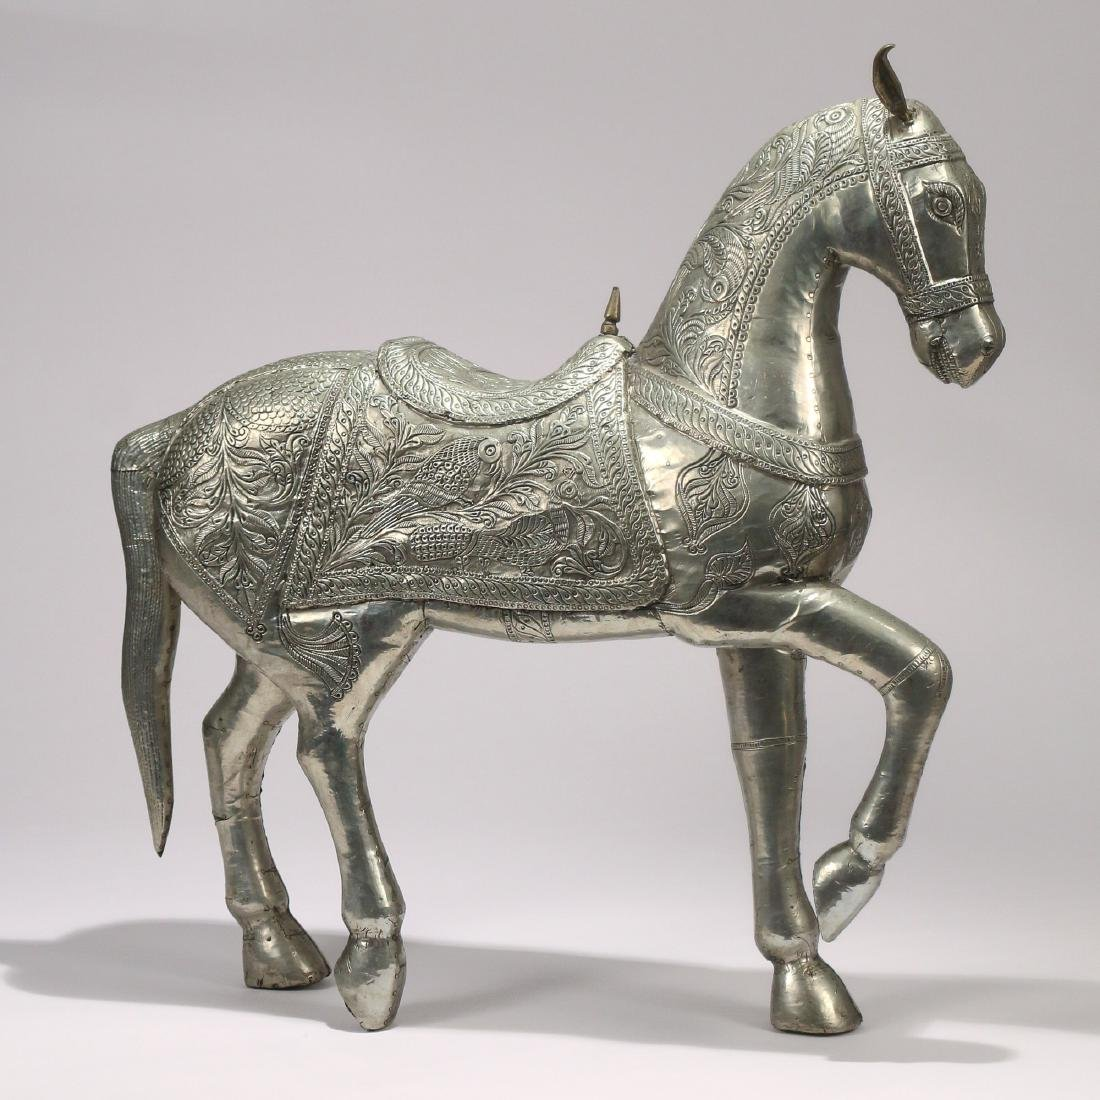 DAMASCUS SILVER FIGURE OF A HORSE